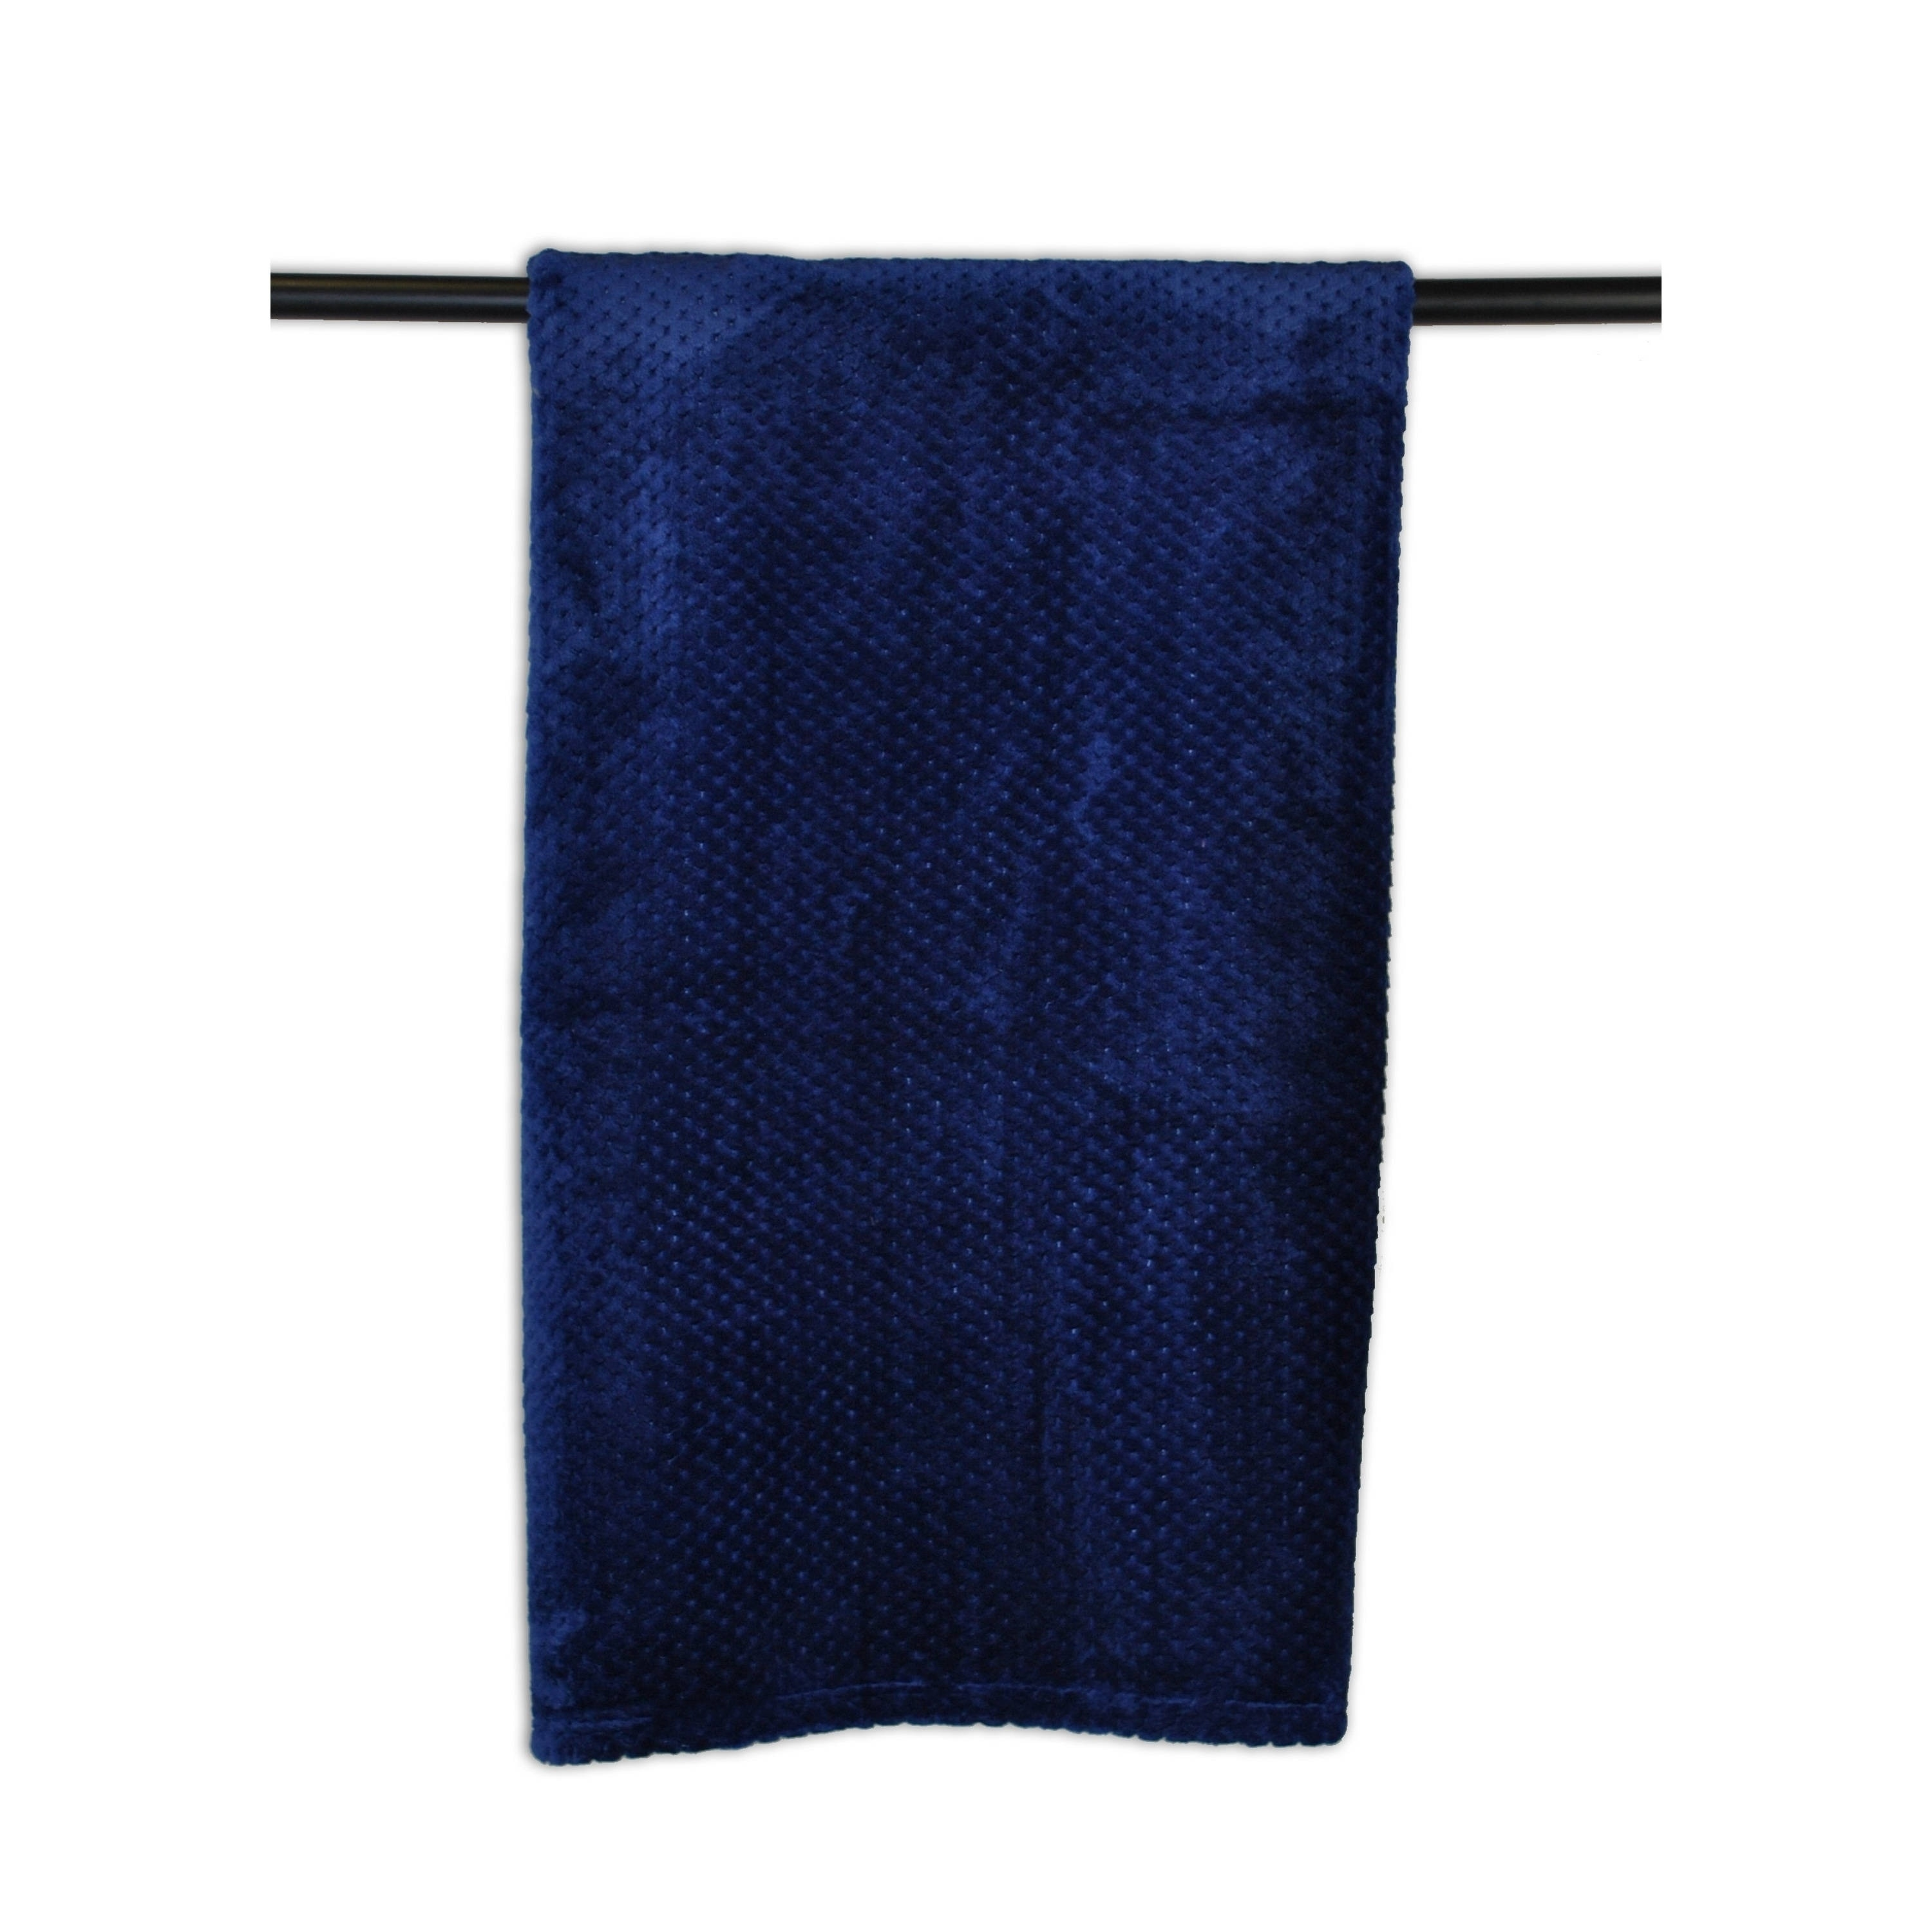 Medium Blue Stadium Throw (Navy) (Polyester, Solid Color)